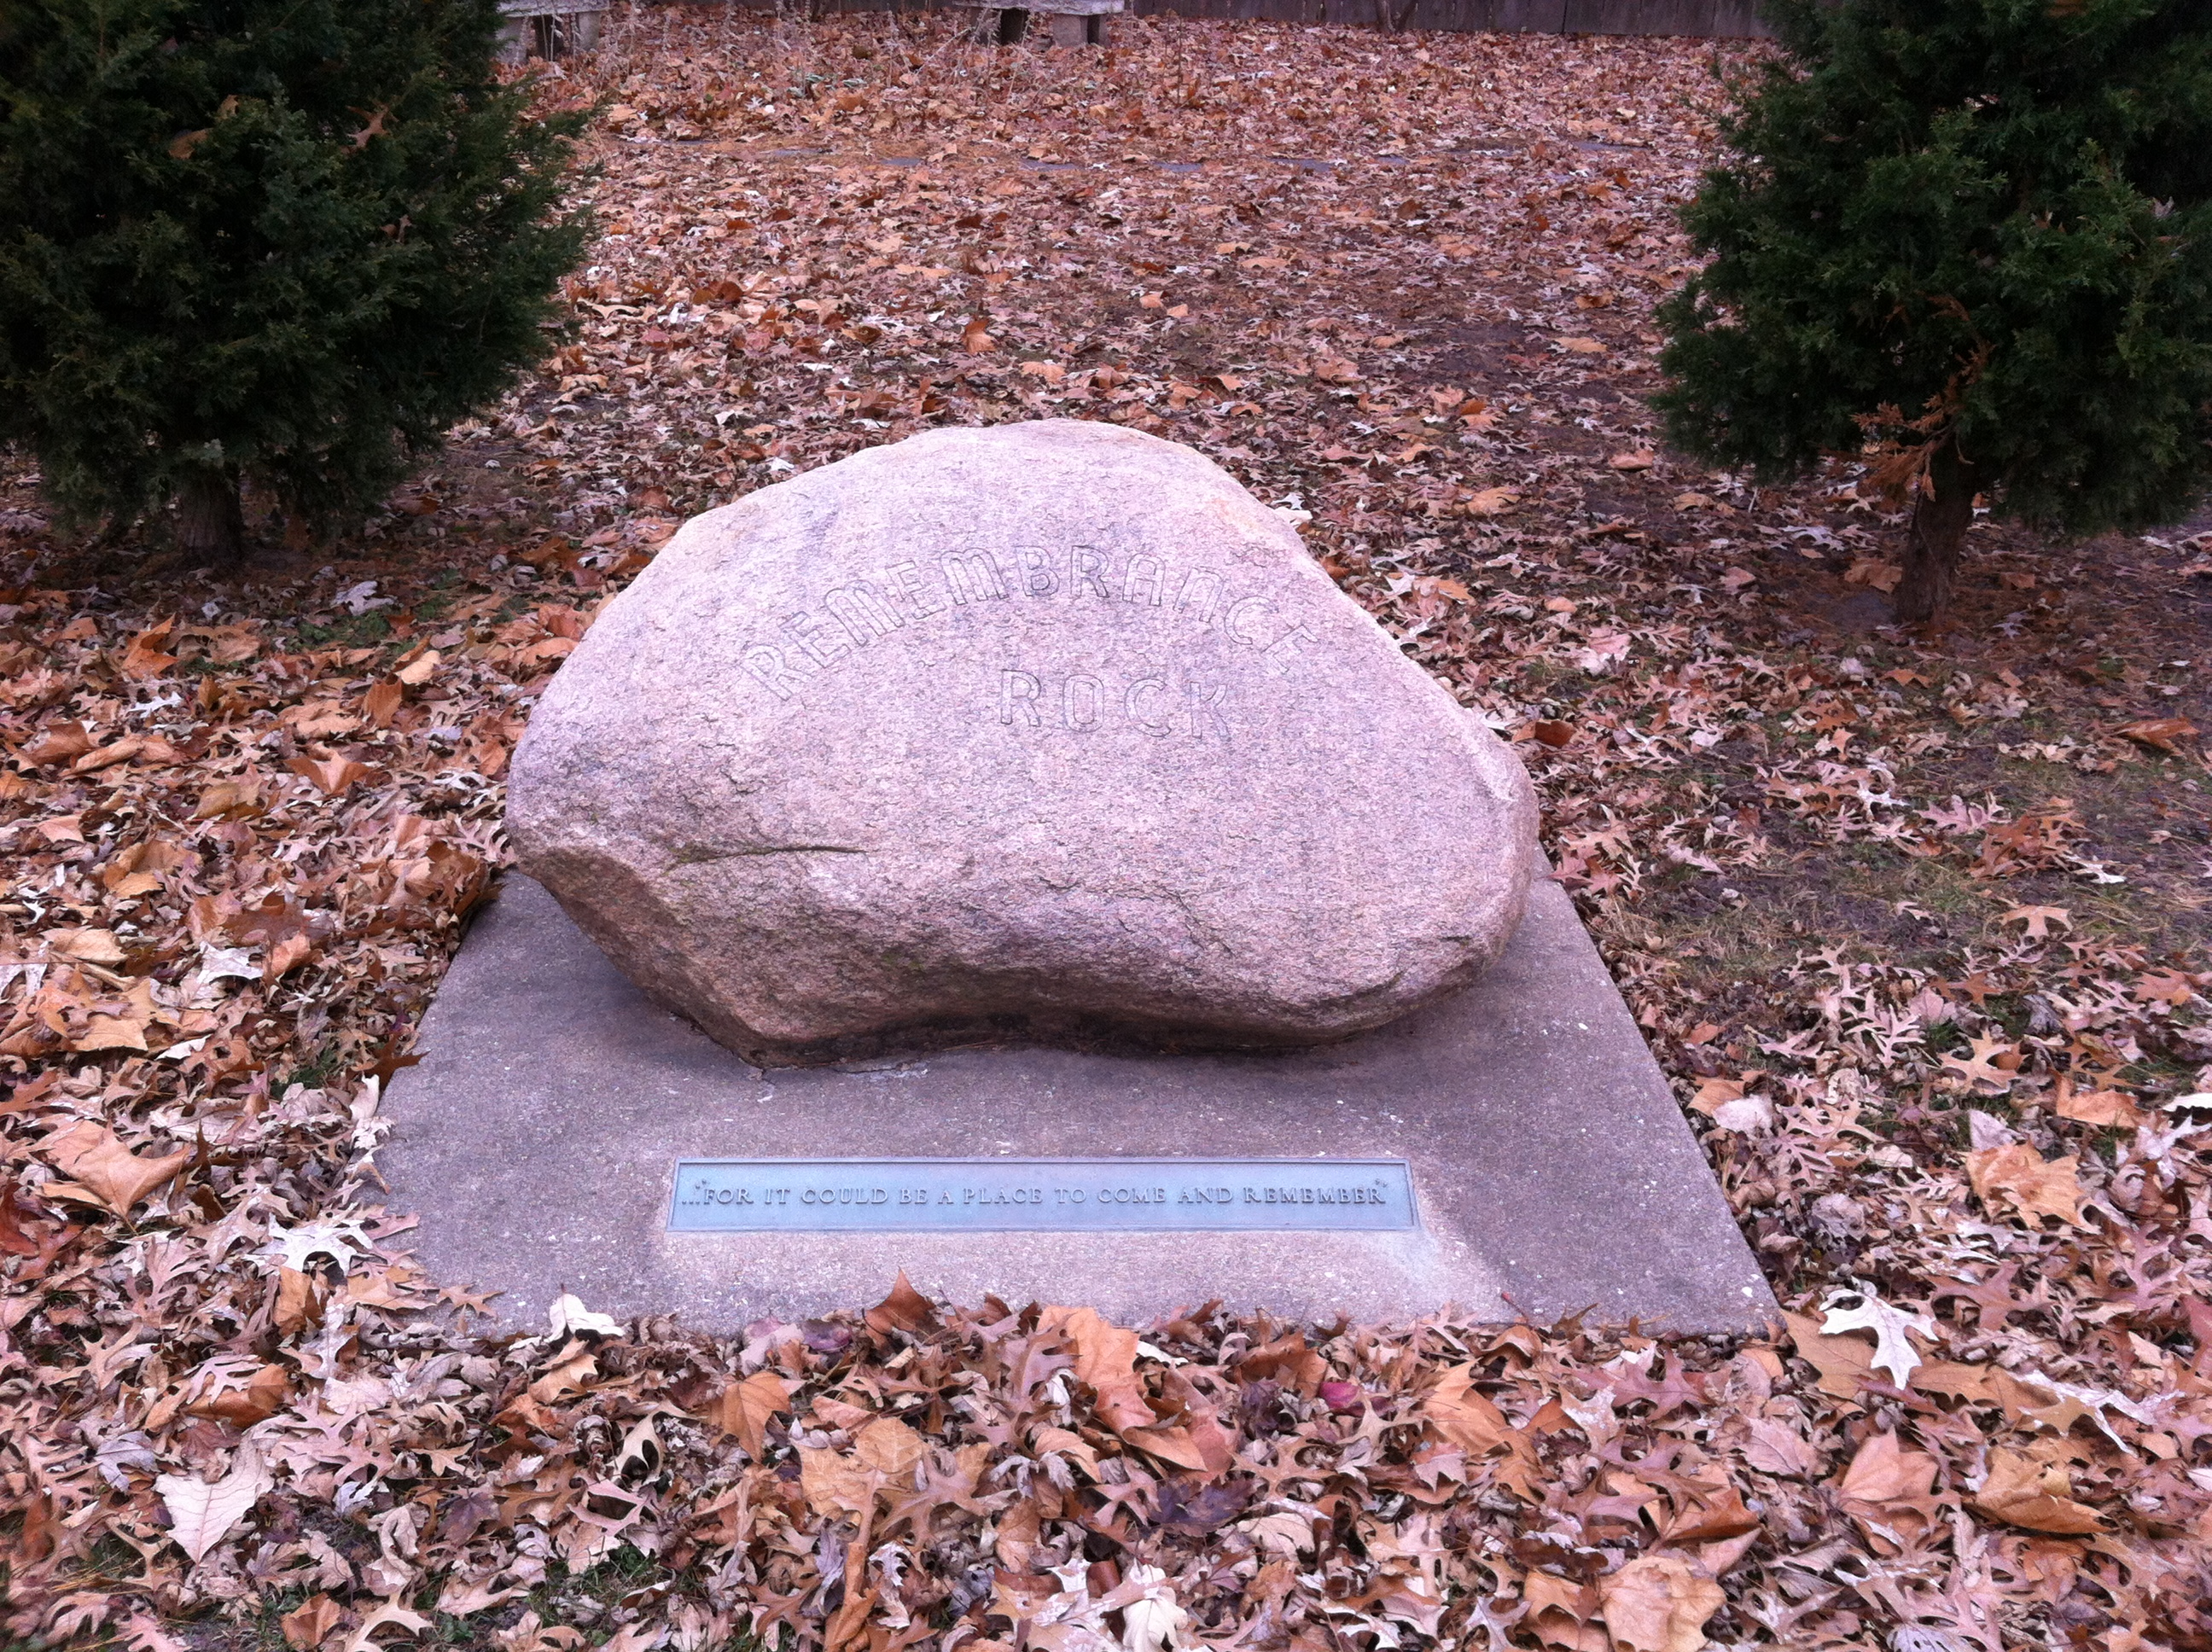 Carl Sandburg's Remembrance Rock